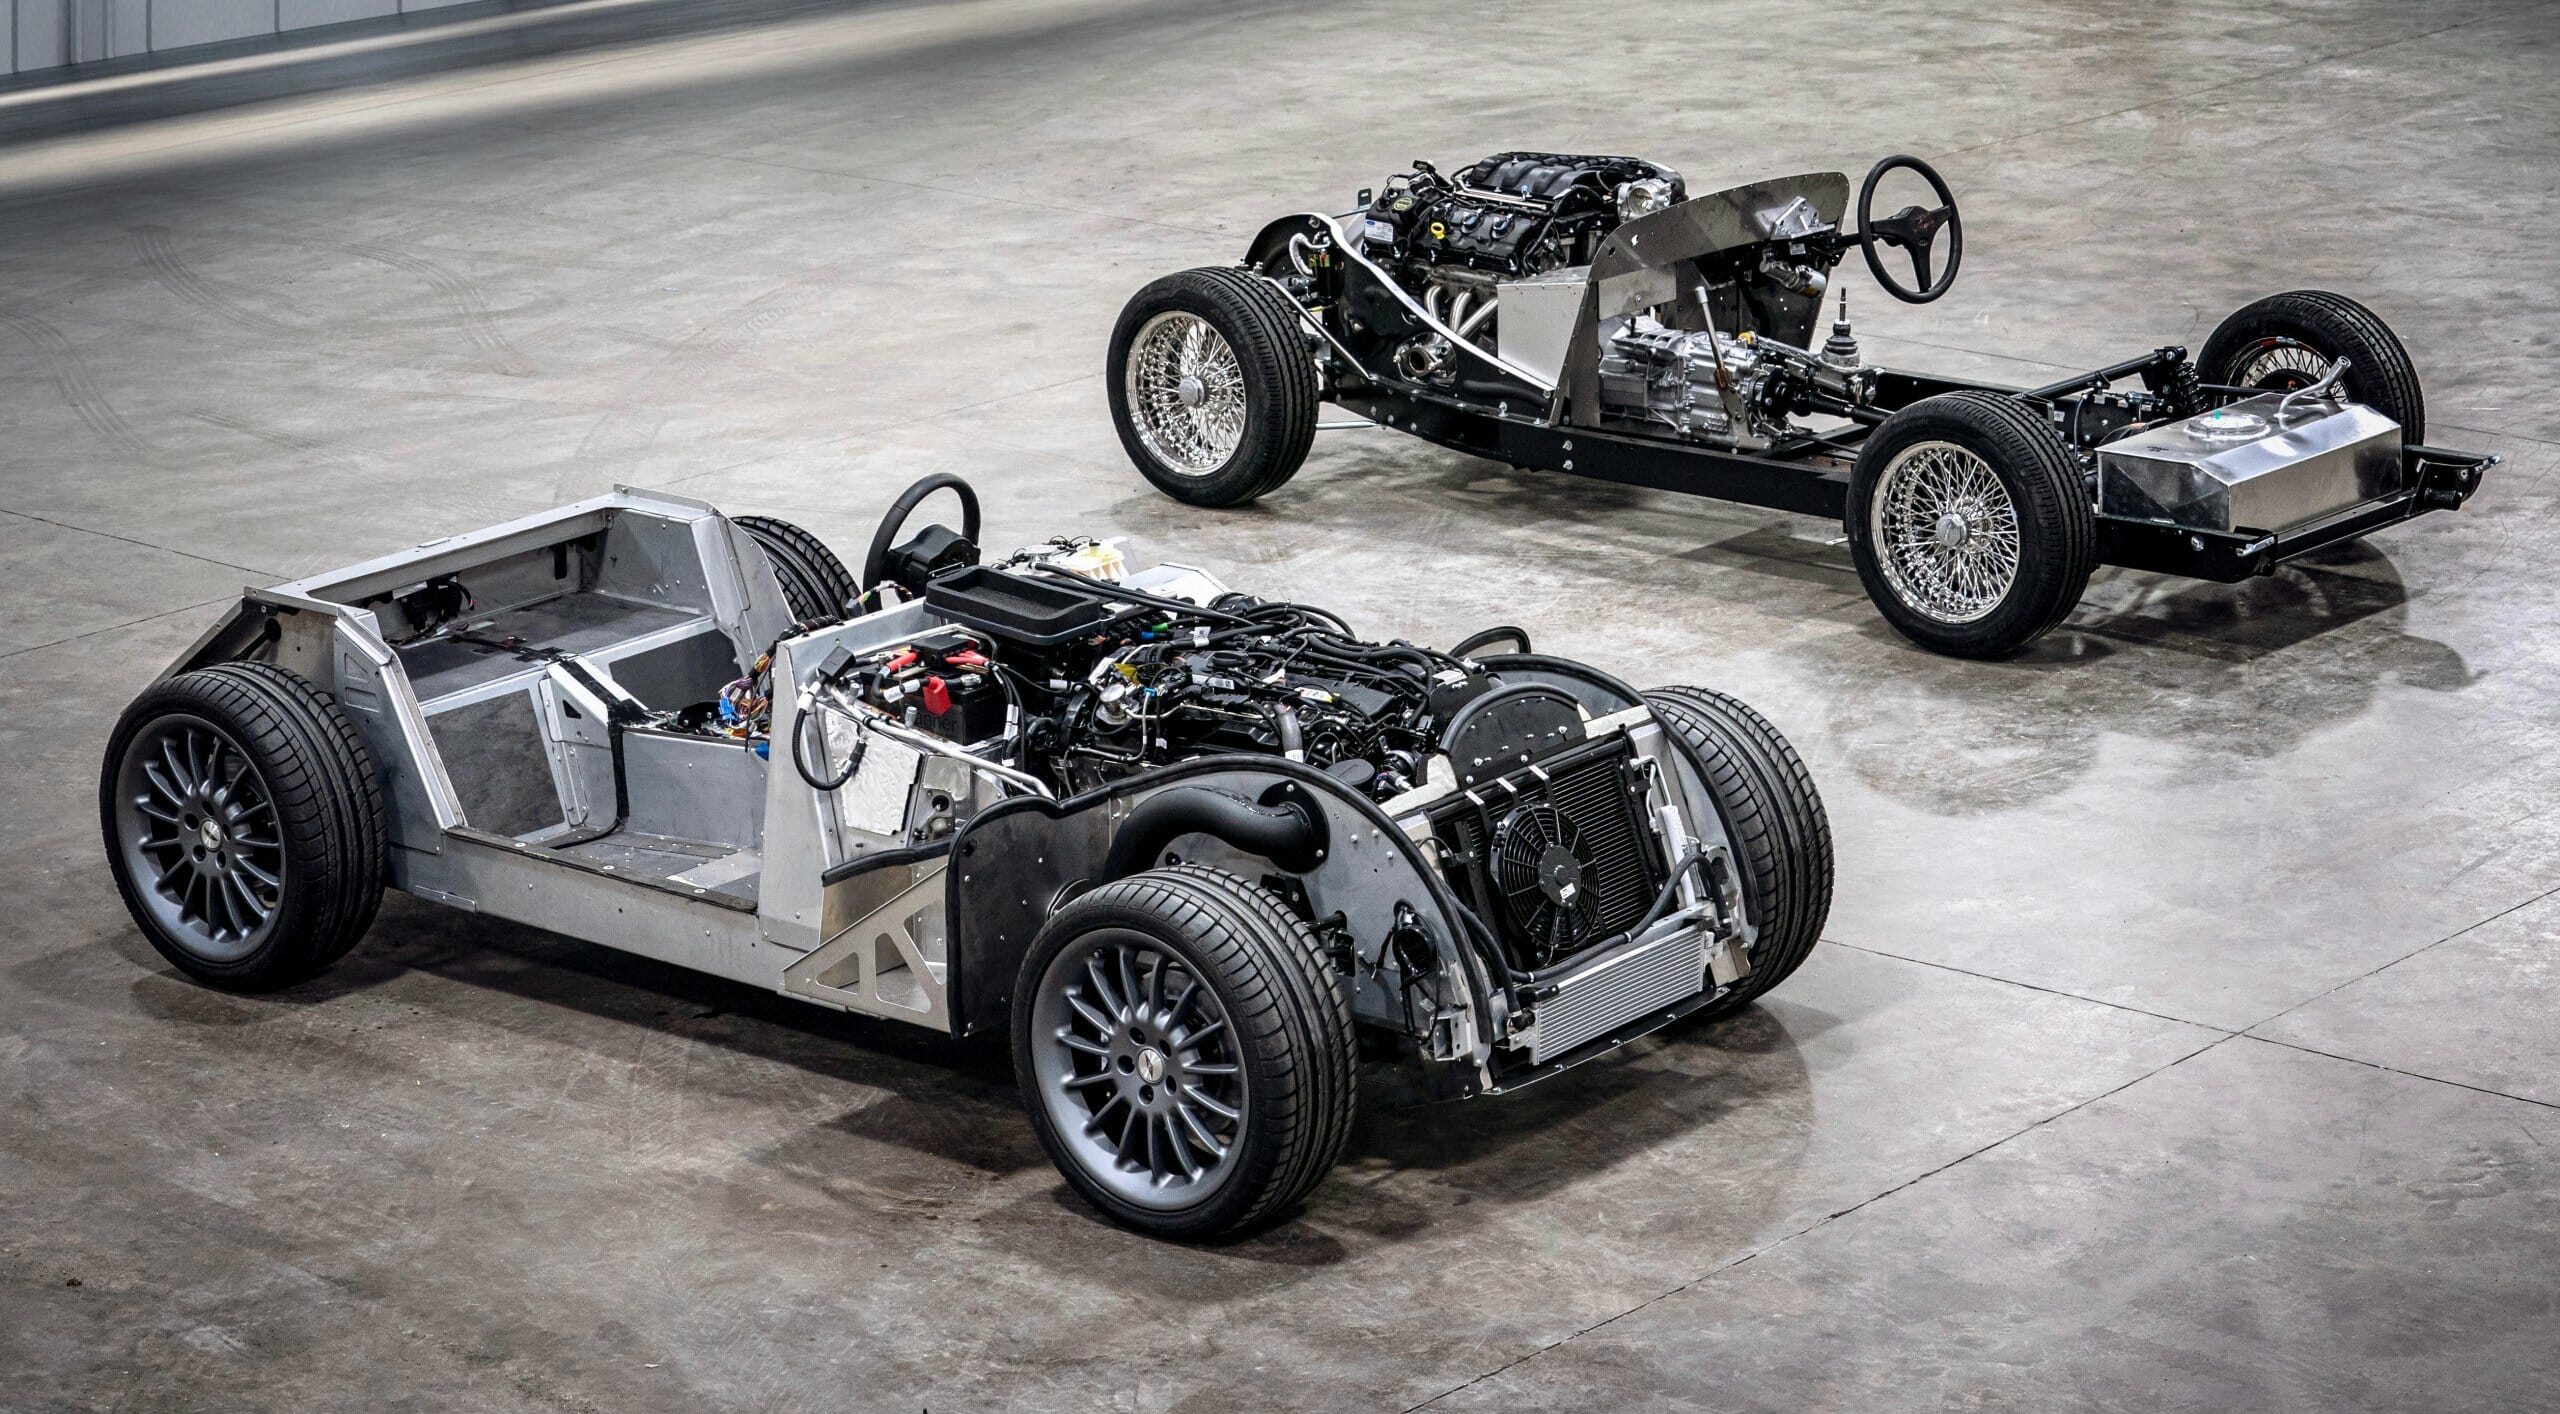 chassis, Morgan moving to aluminum chassis but keeping wood body framing, ClassicCars.com Journal